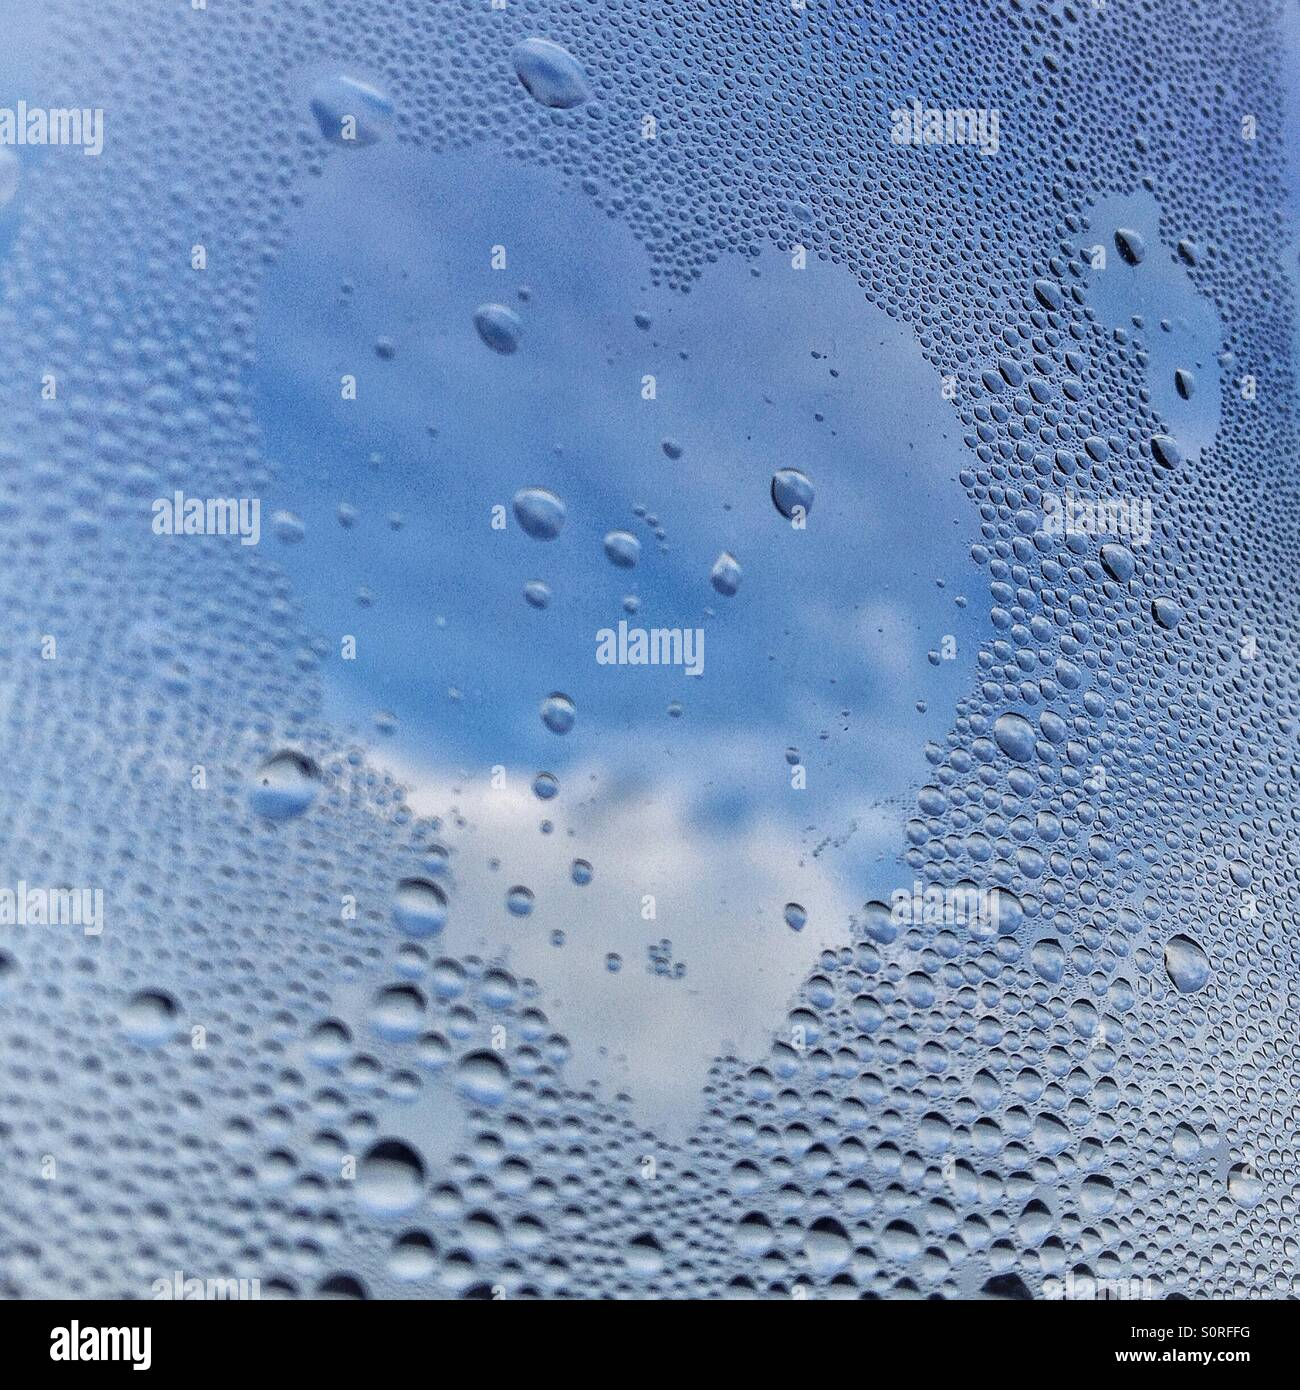 Heart shape made in condensation on window - Stock Image